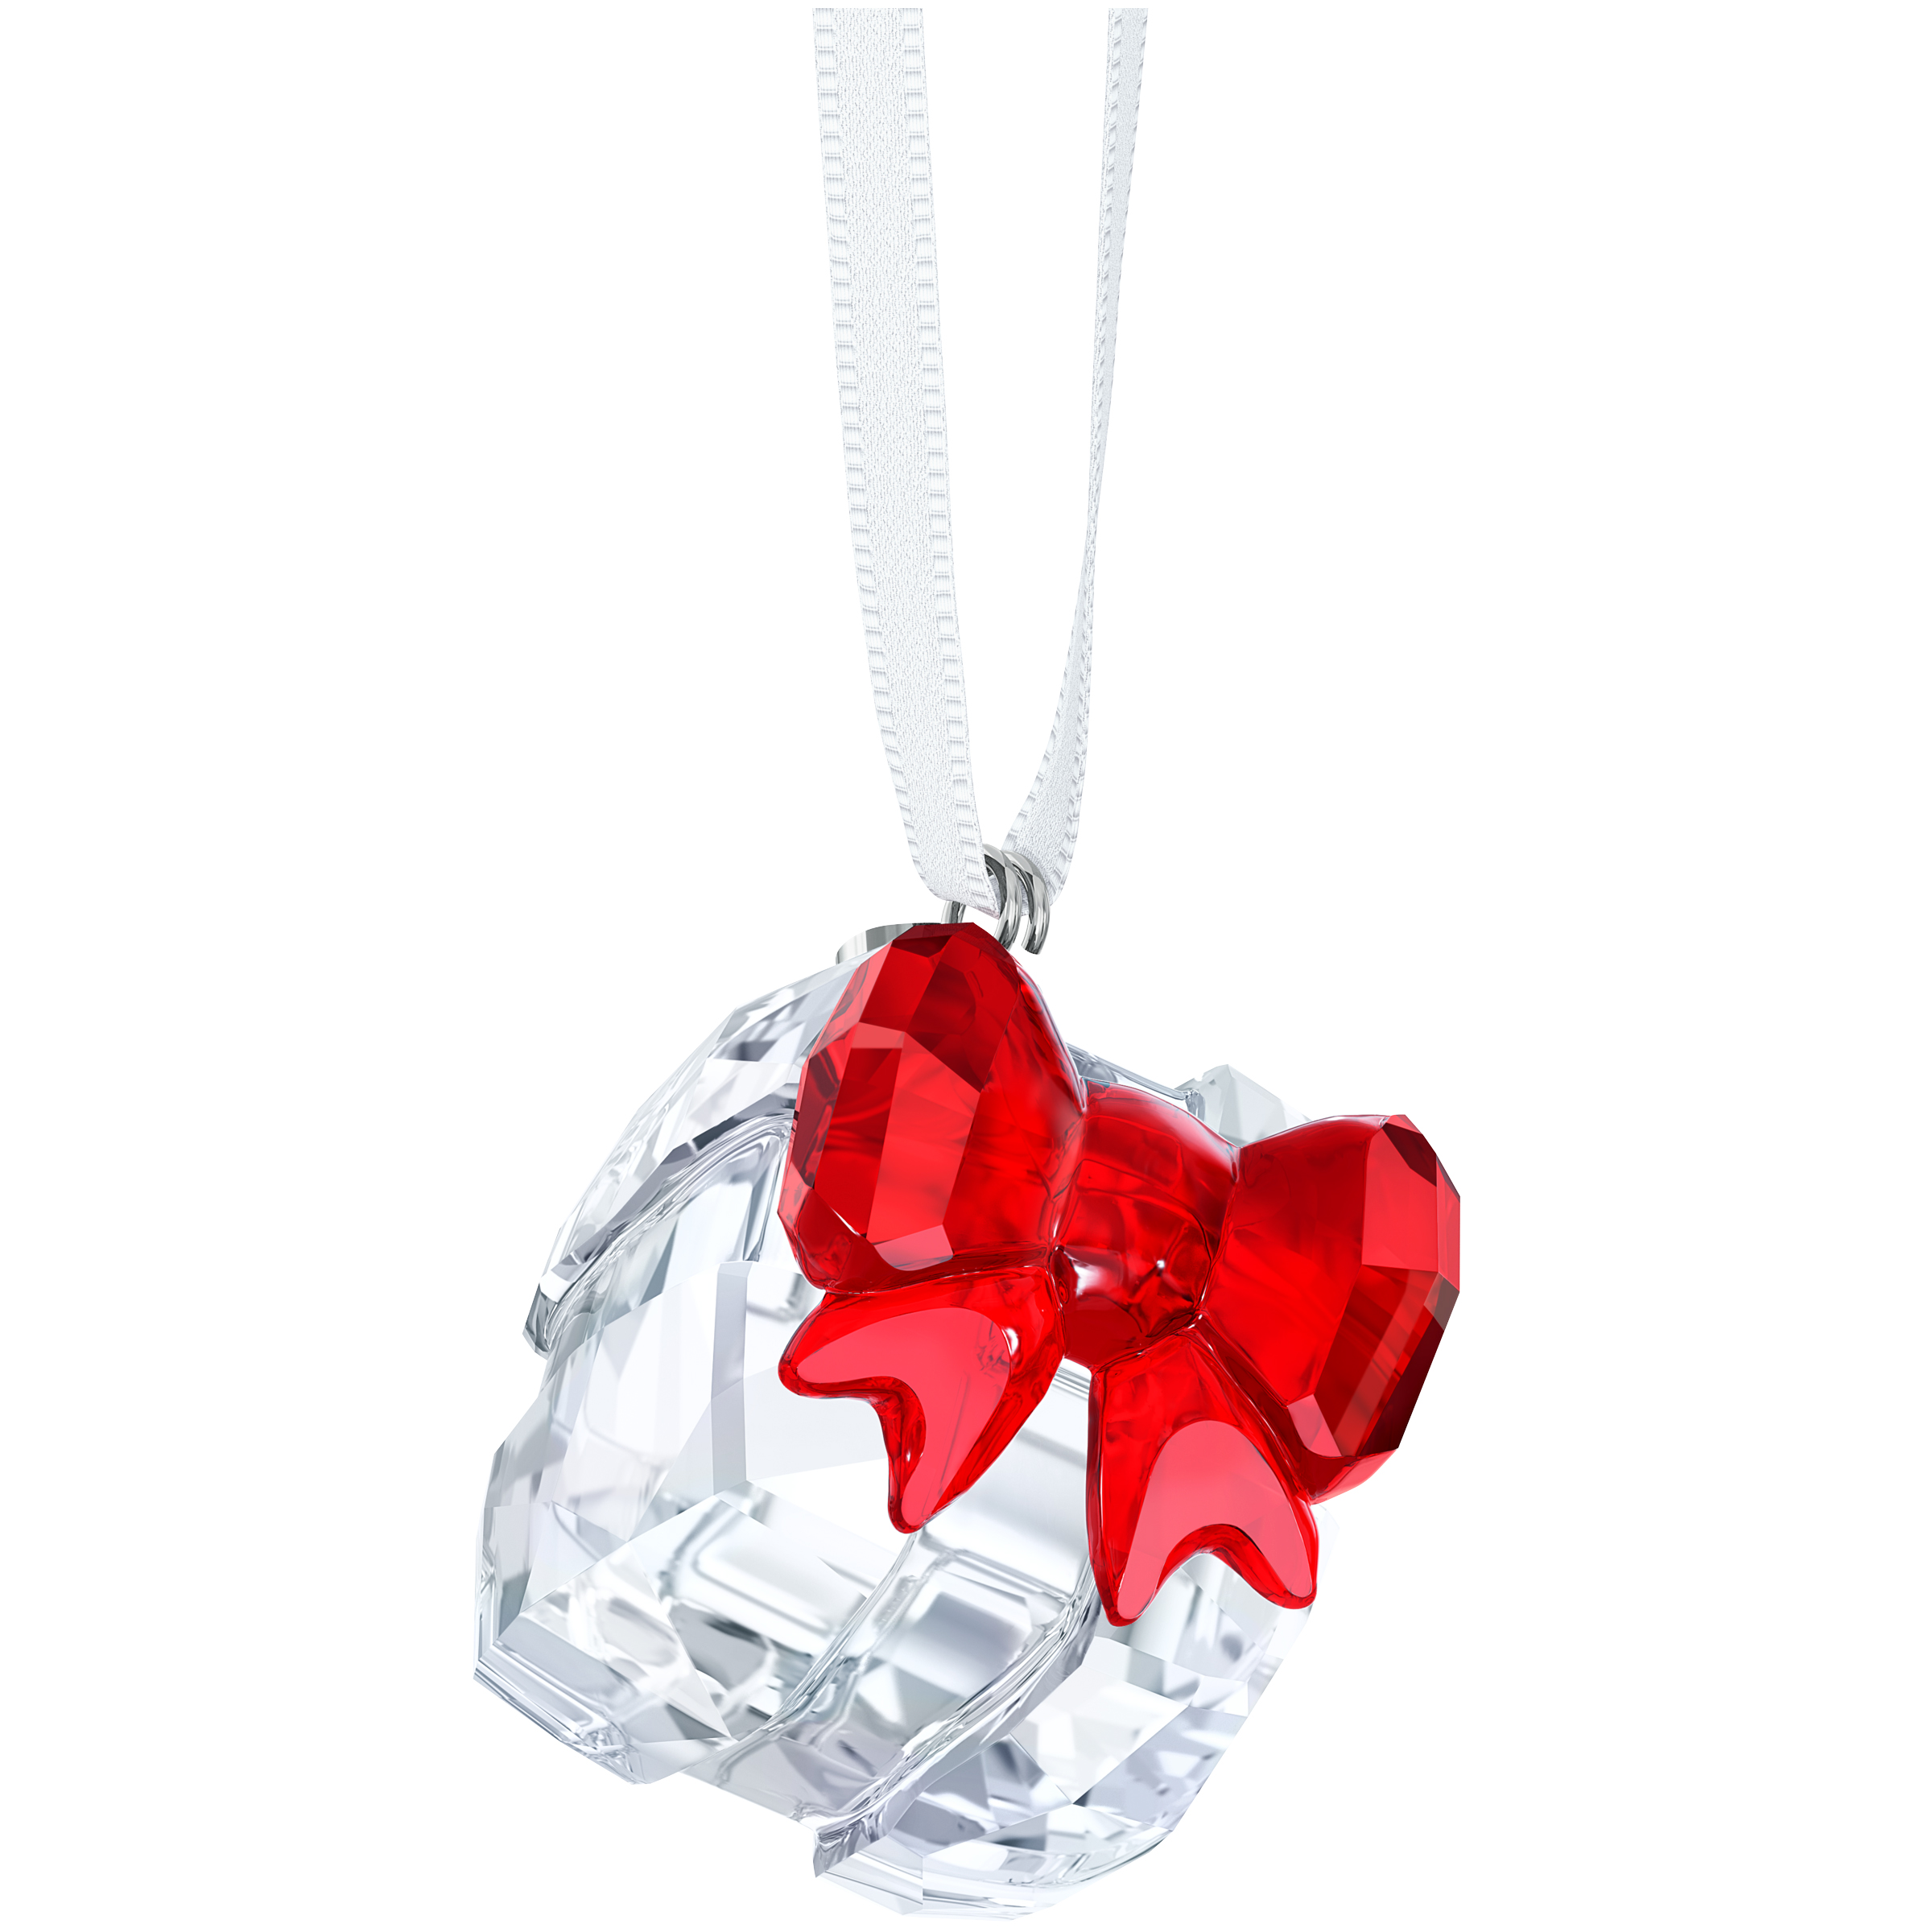 Buy Cheap Swarovski Crystal Ornament